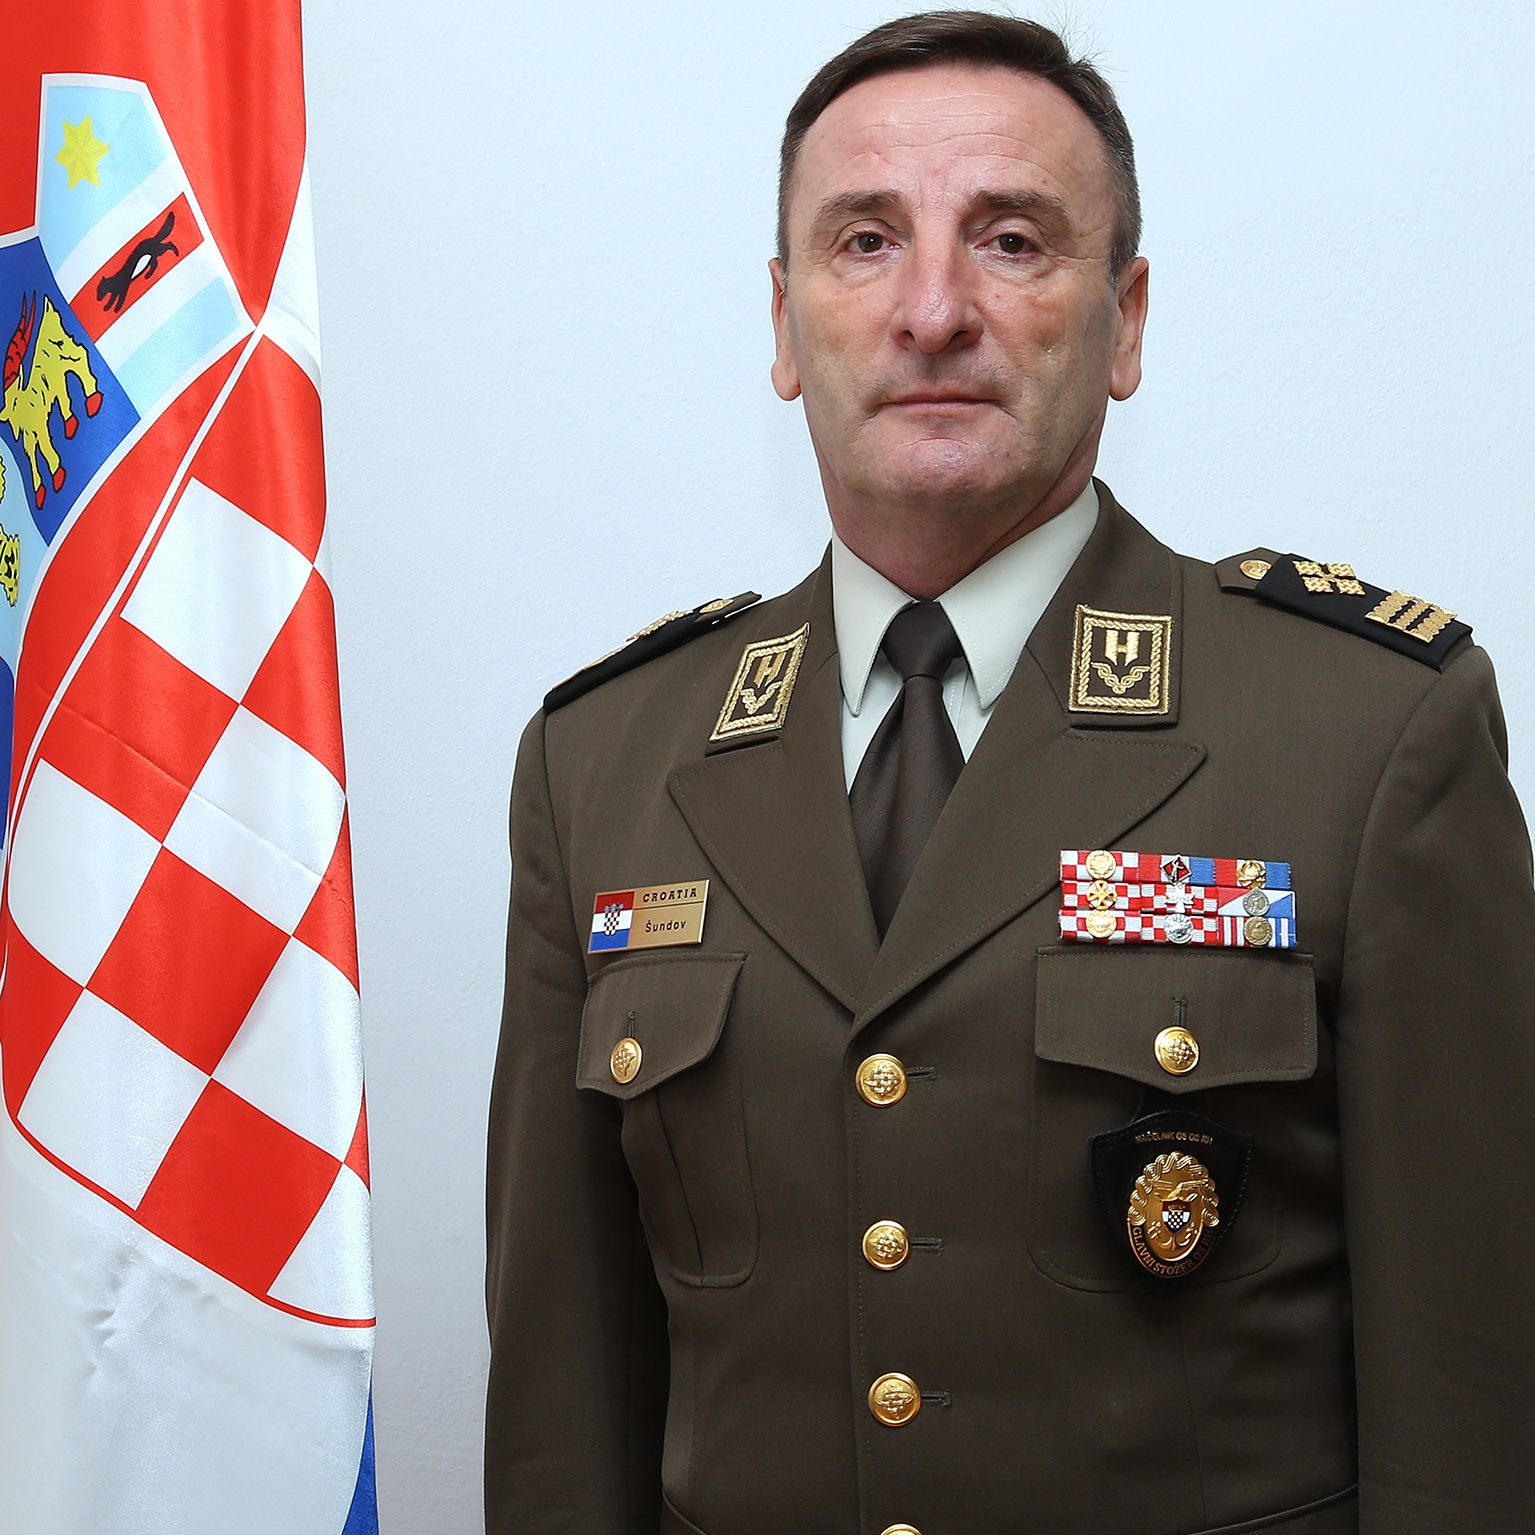 General Mirko Šundov, Chief of Defence at Croatian Armed Forces